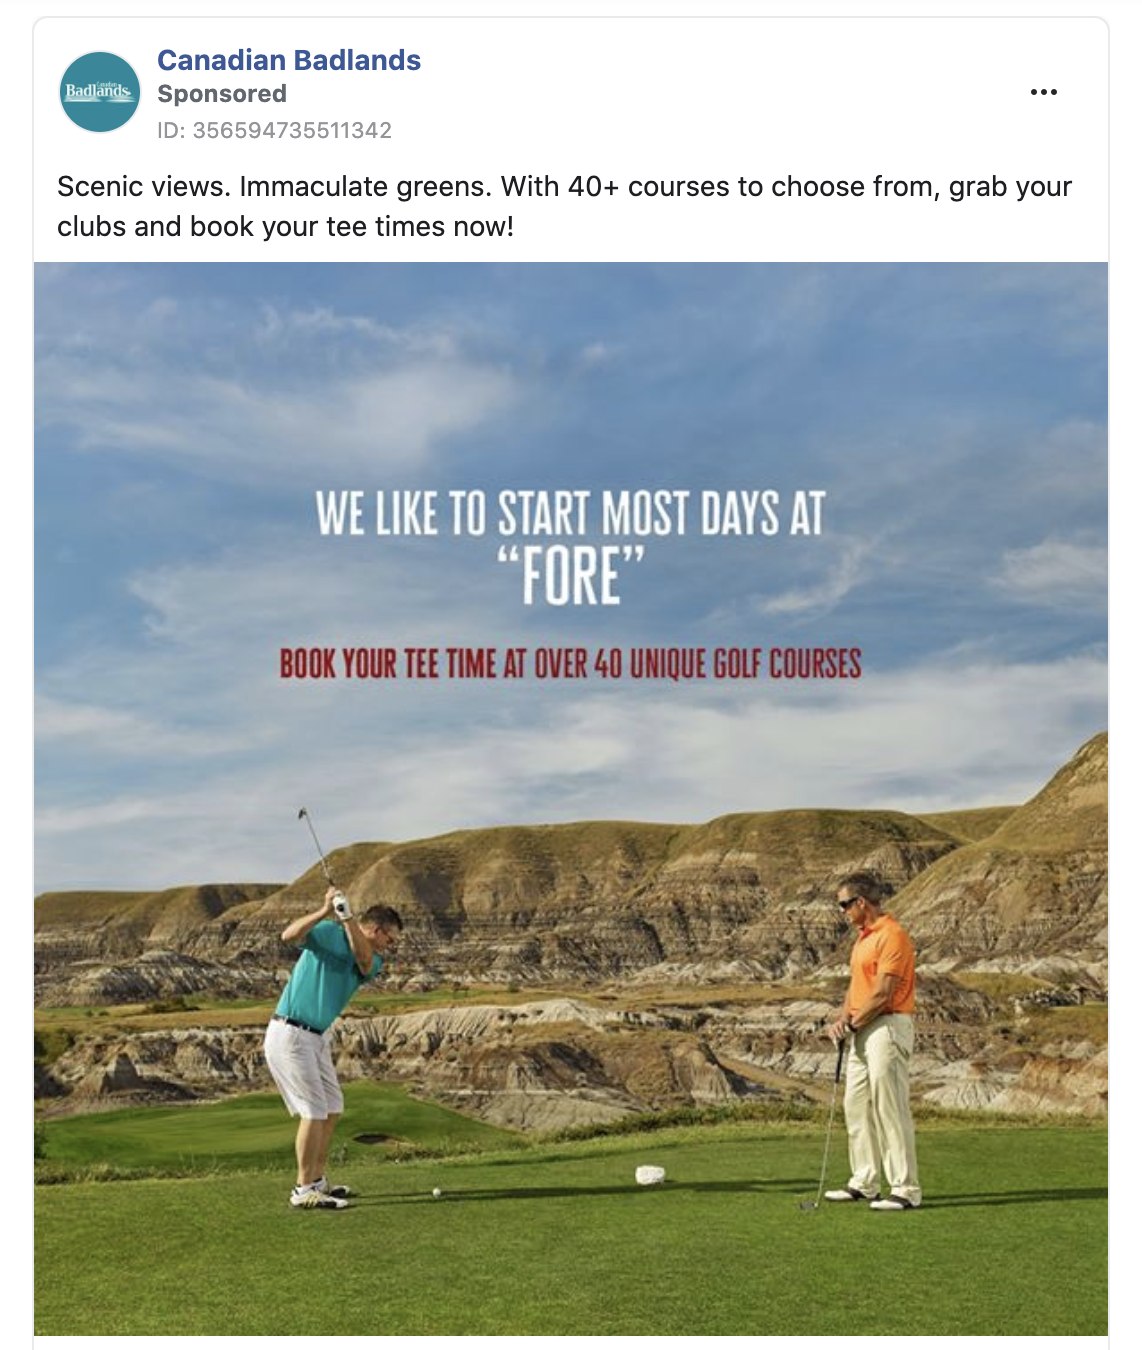 Facebook Ad for golf in Canadian Badlands